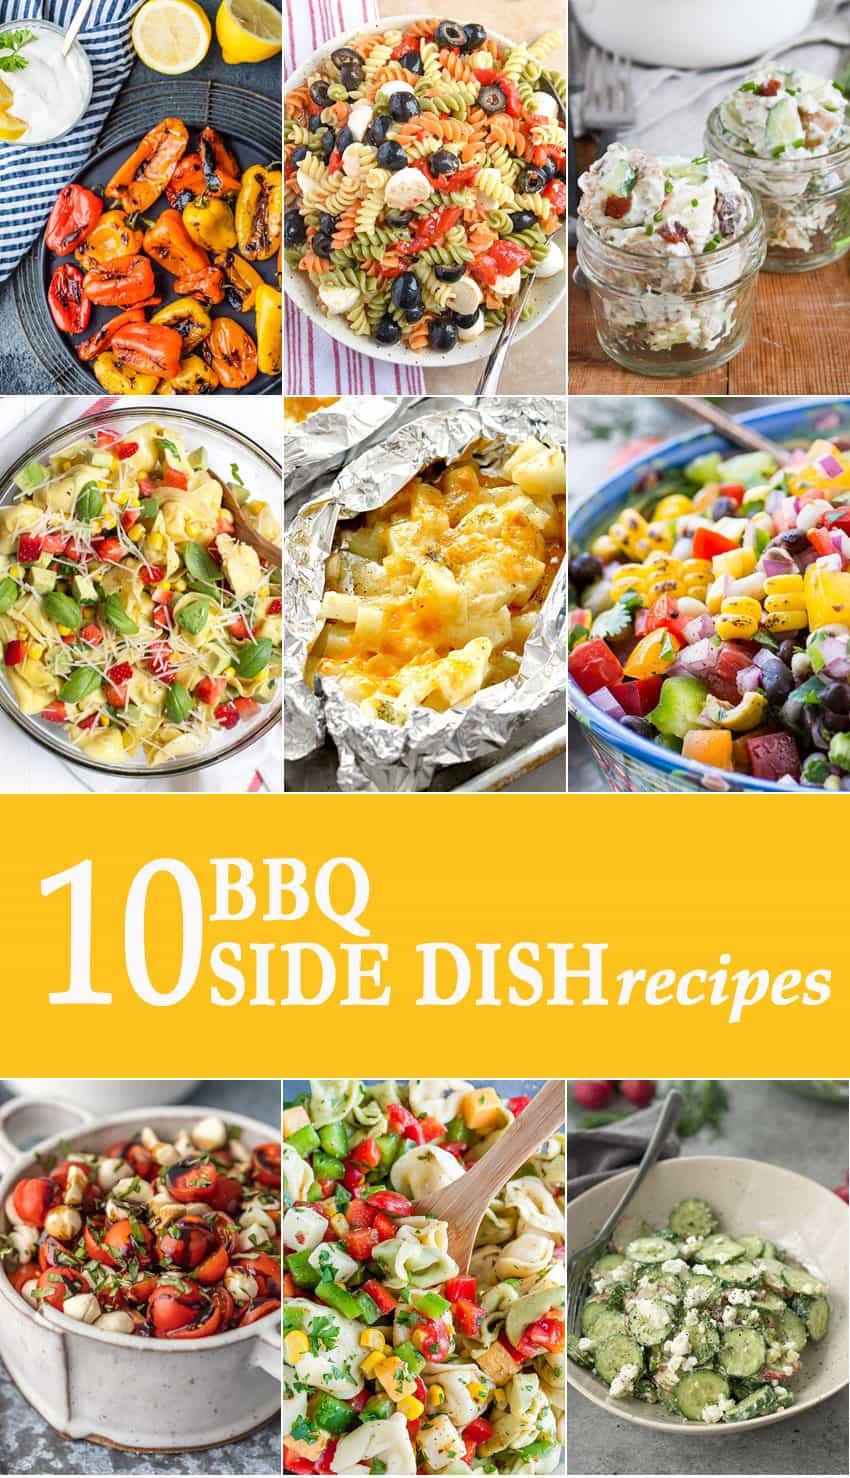 10 BBQ Side Dish Recipes